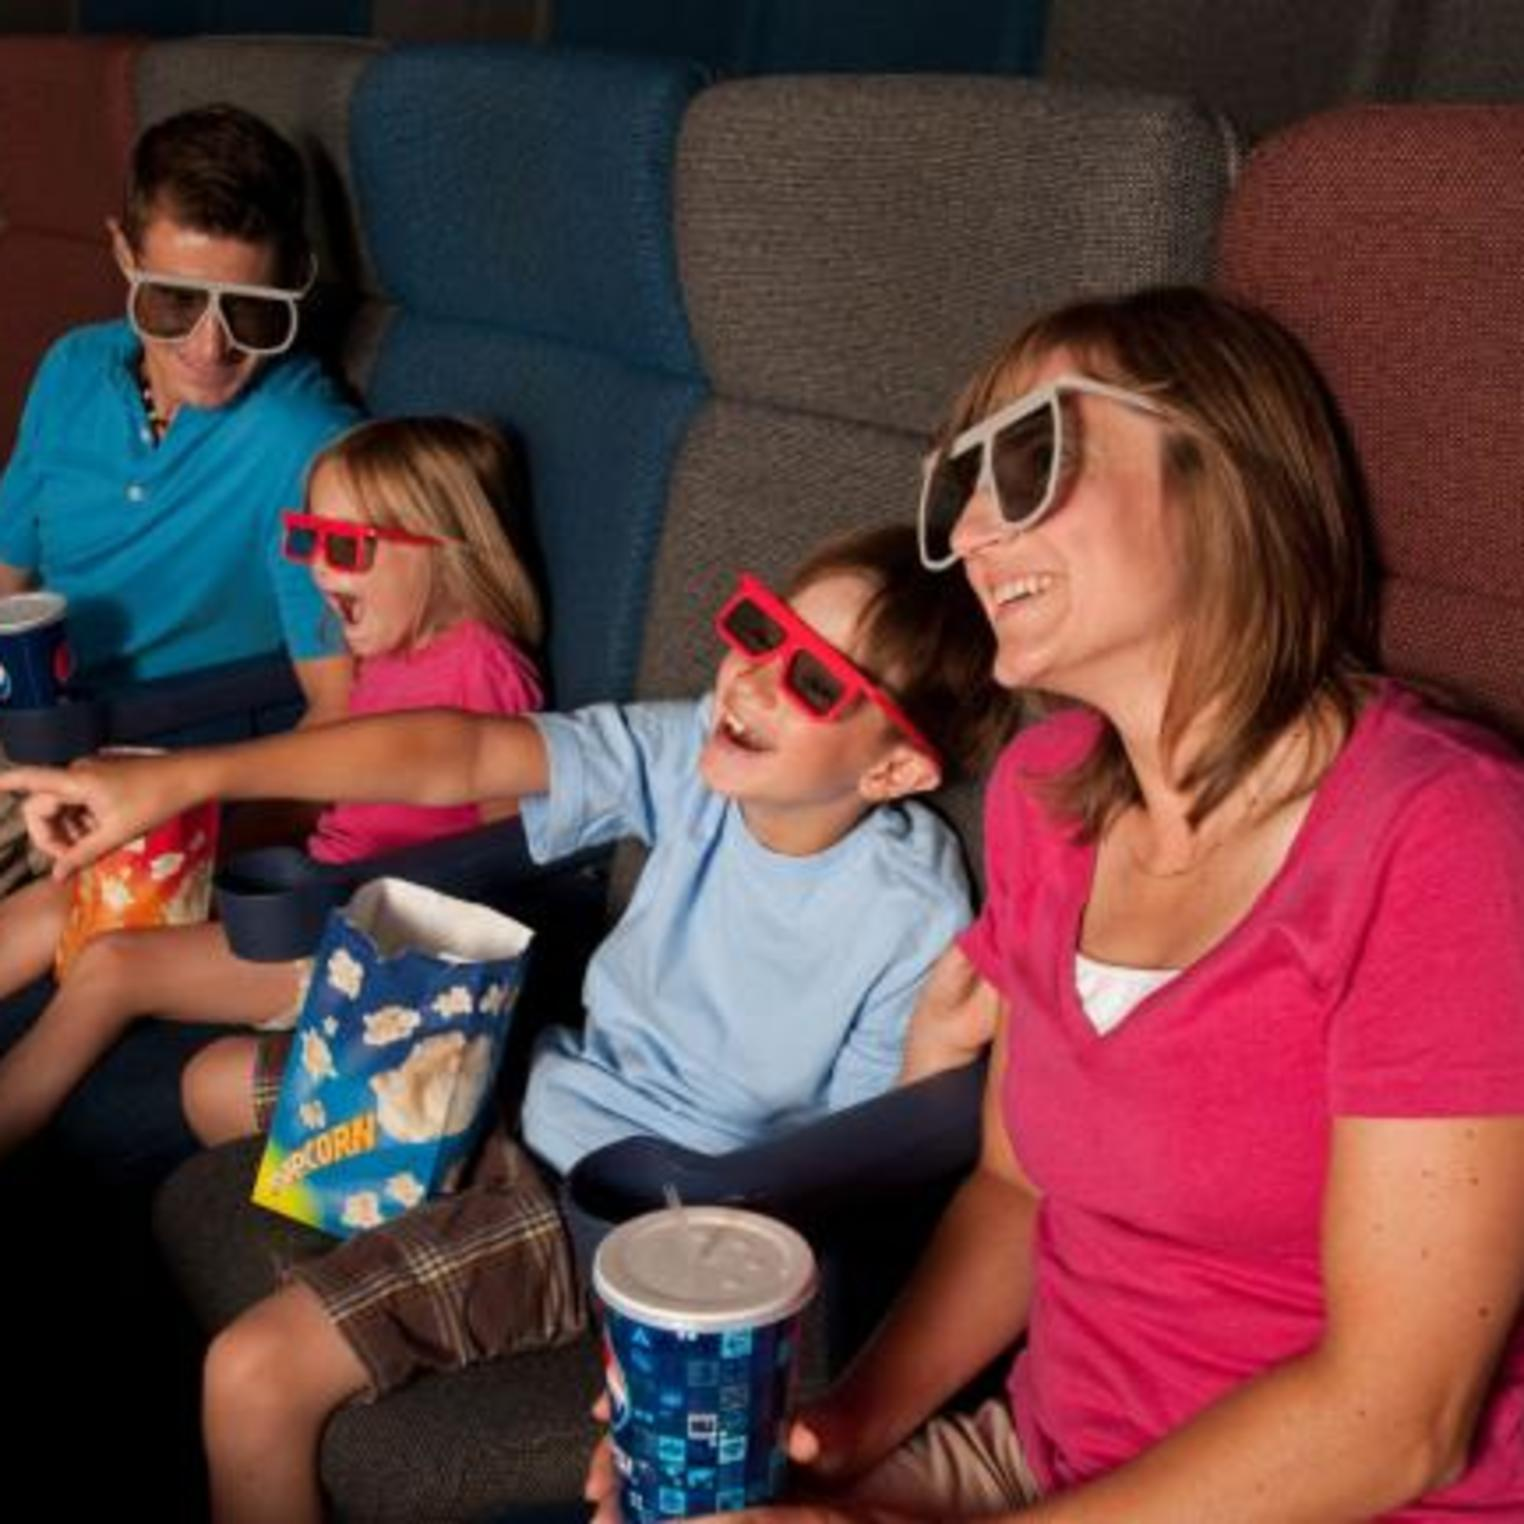 Enjoy a movie on the six-story IMAX screen!